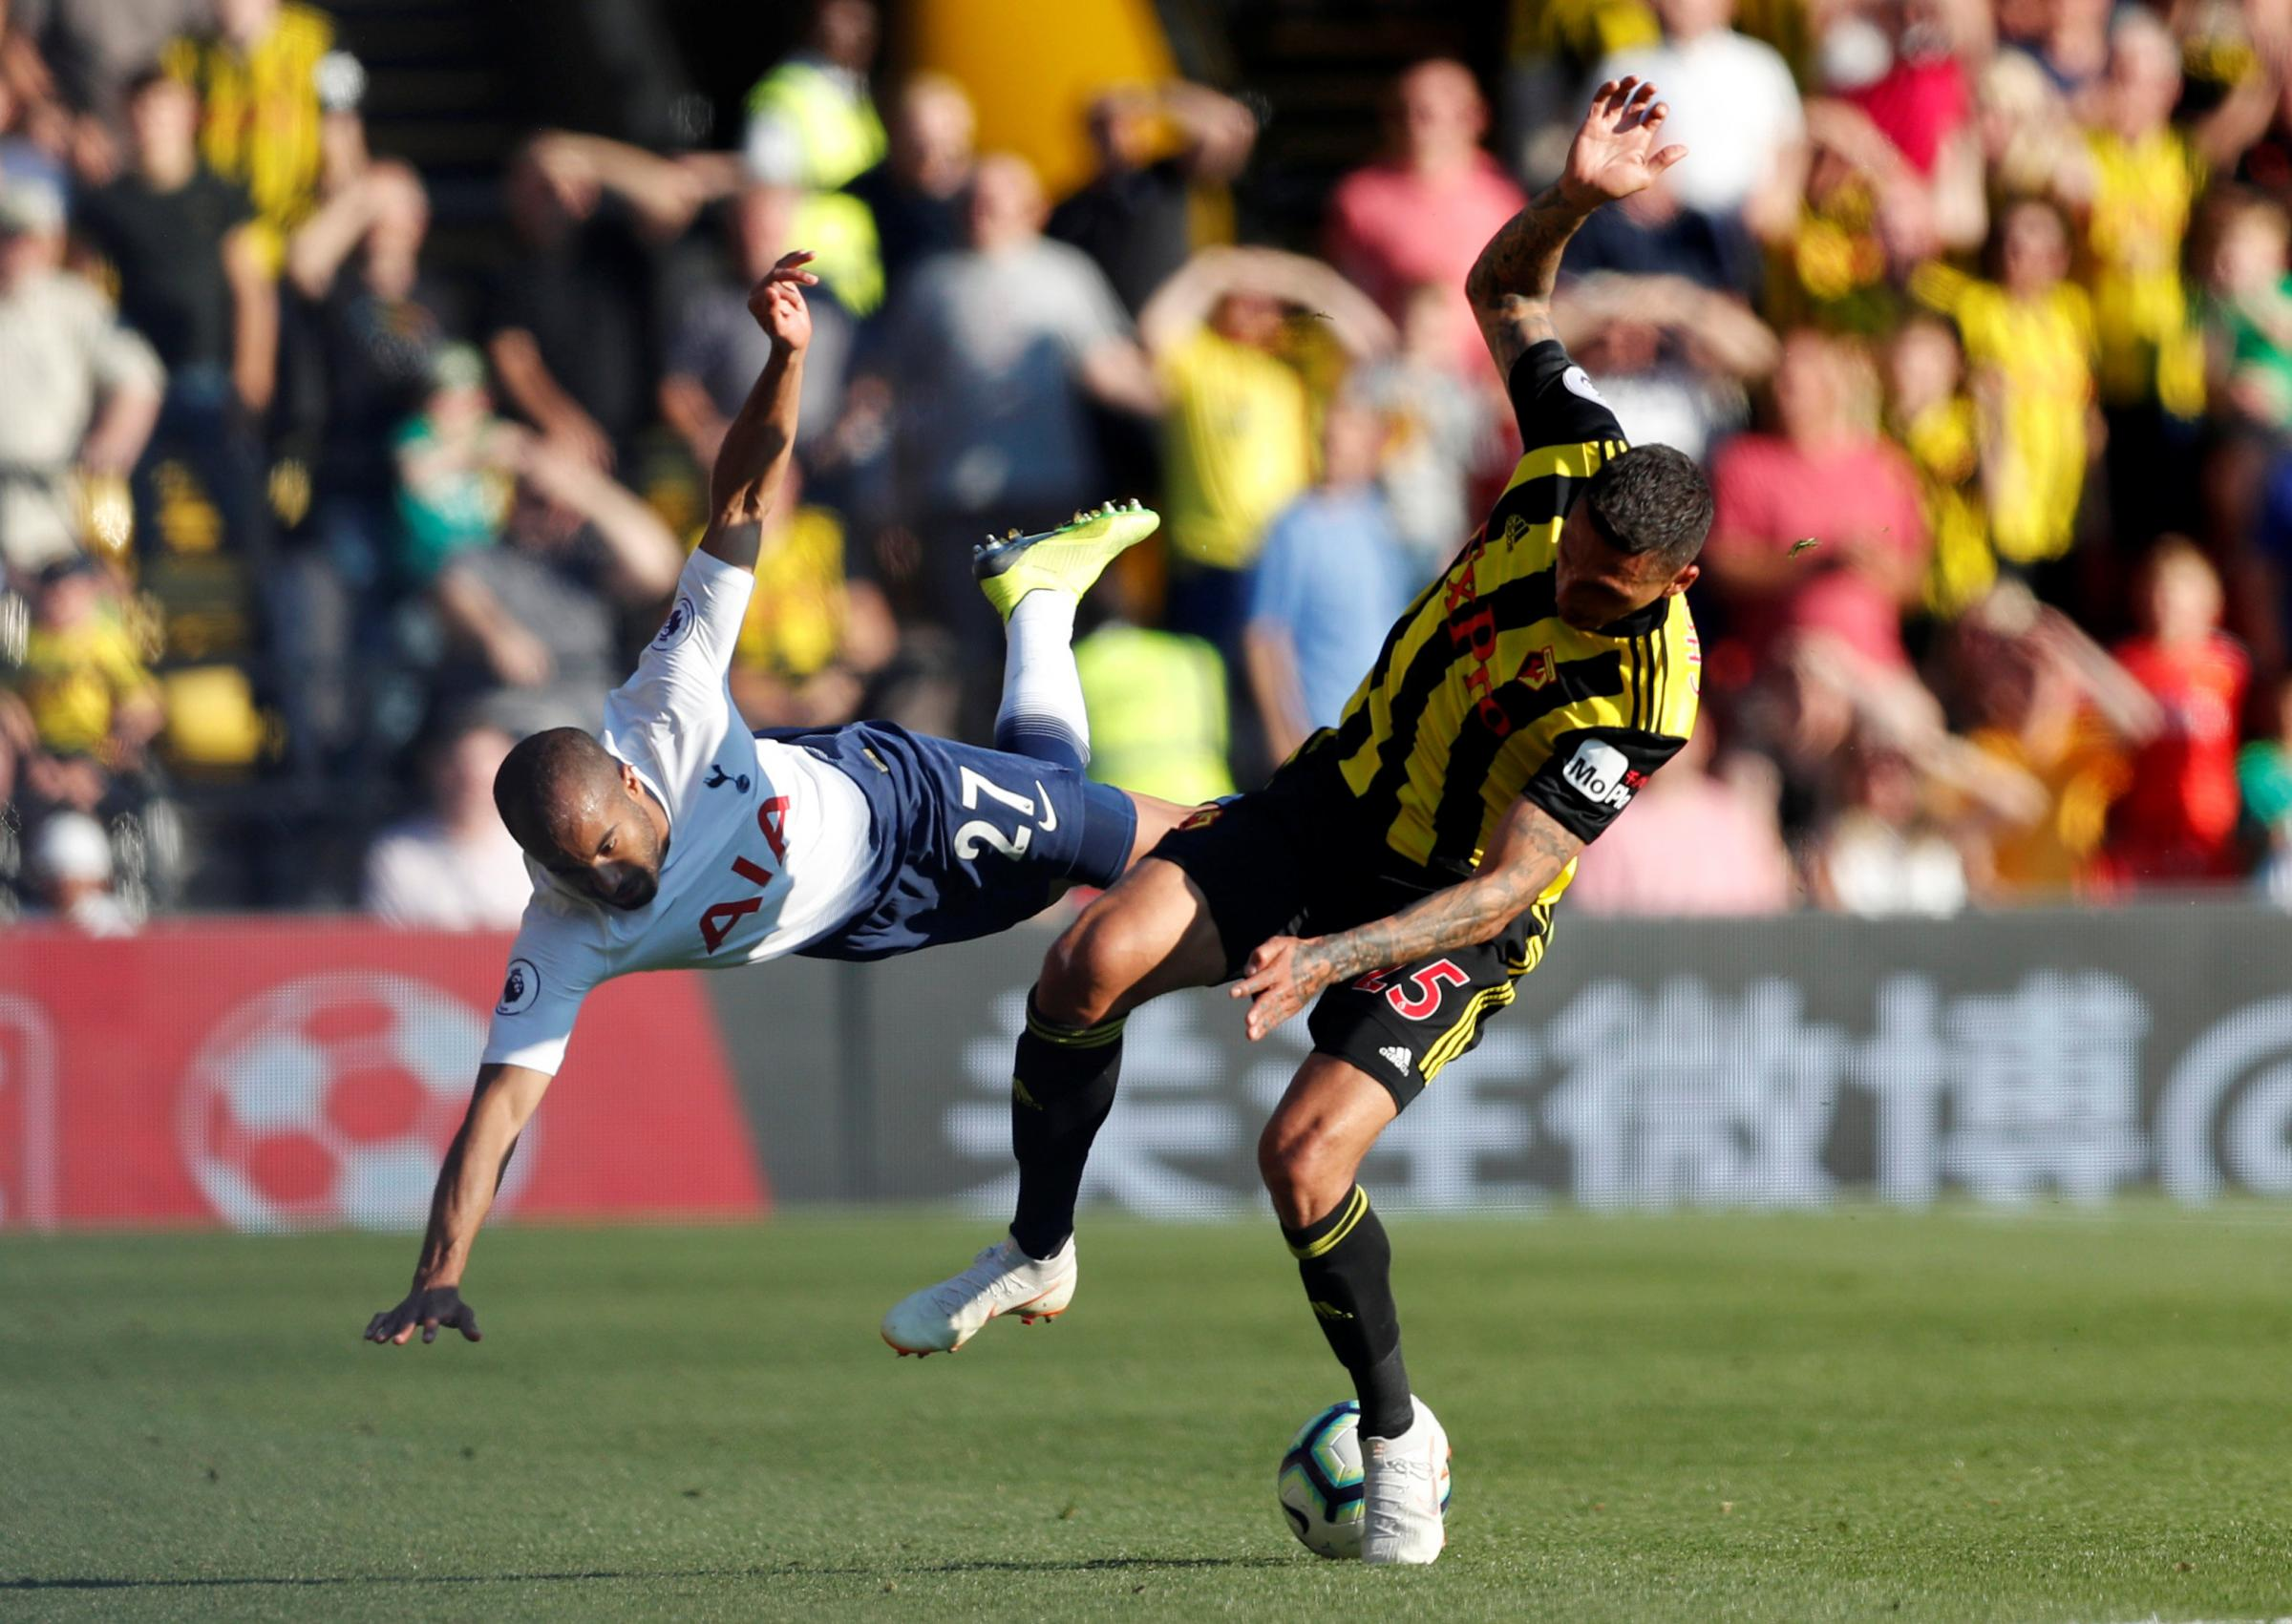 Jose Holebas provided both assists in Watford's 2-1 defeat of Tottenham Hotspur. Picture: Action Images